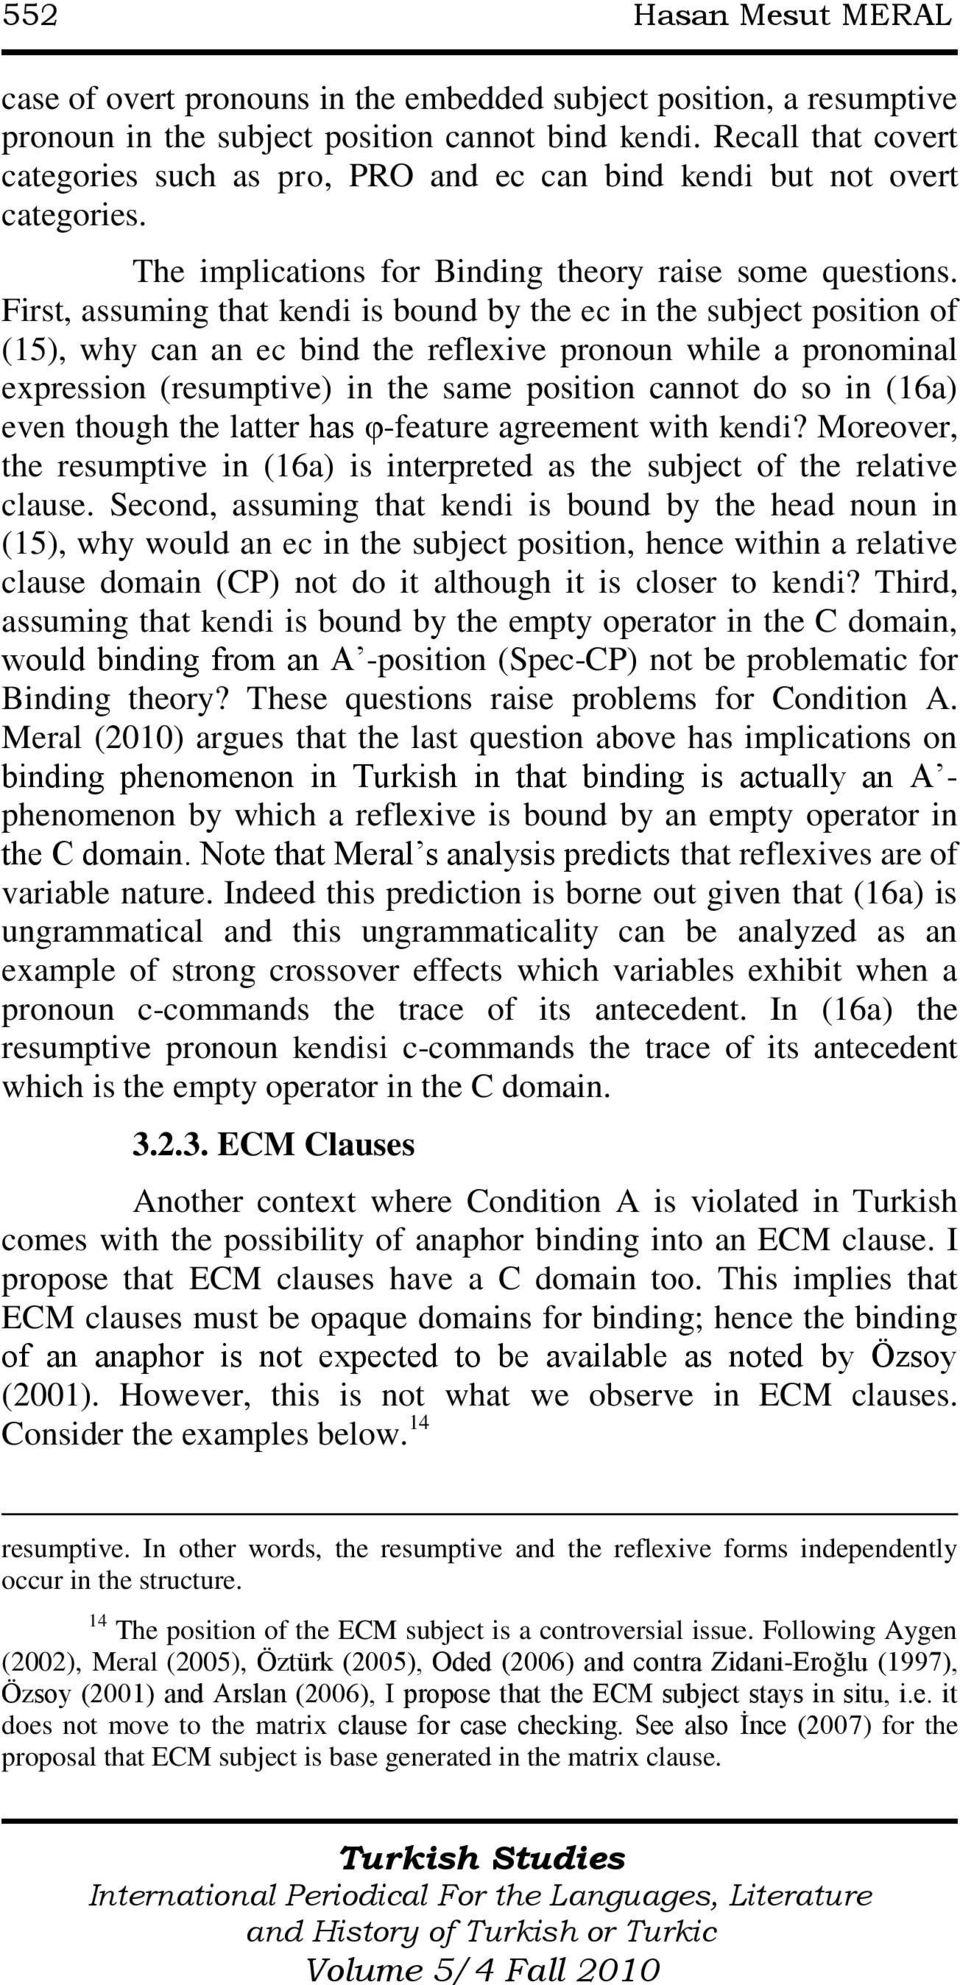 First, assuming that kendi is bound by the ec in the subject position of (15), why can an ec bind the reflexive pronoun while a pronominal expression (resumptive) in the same position cannot do so in